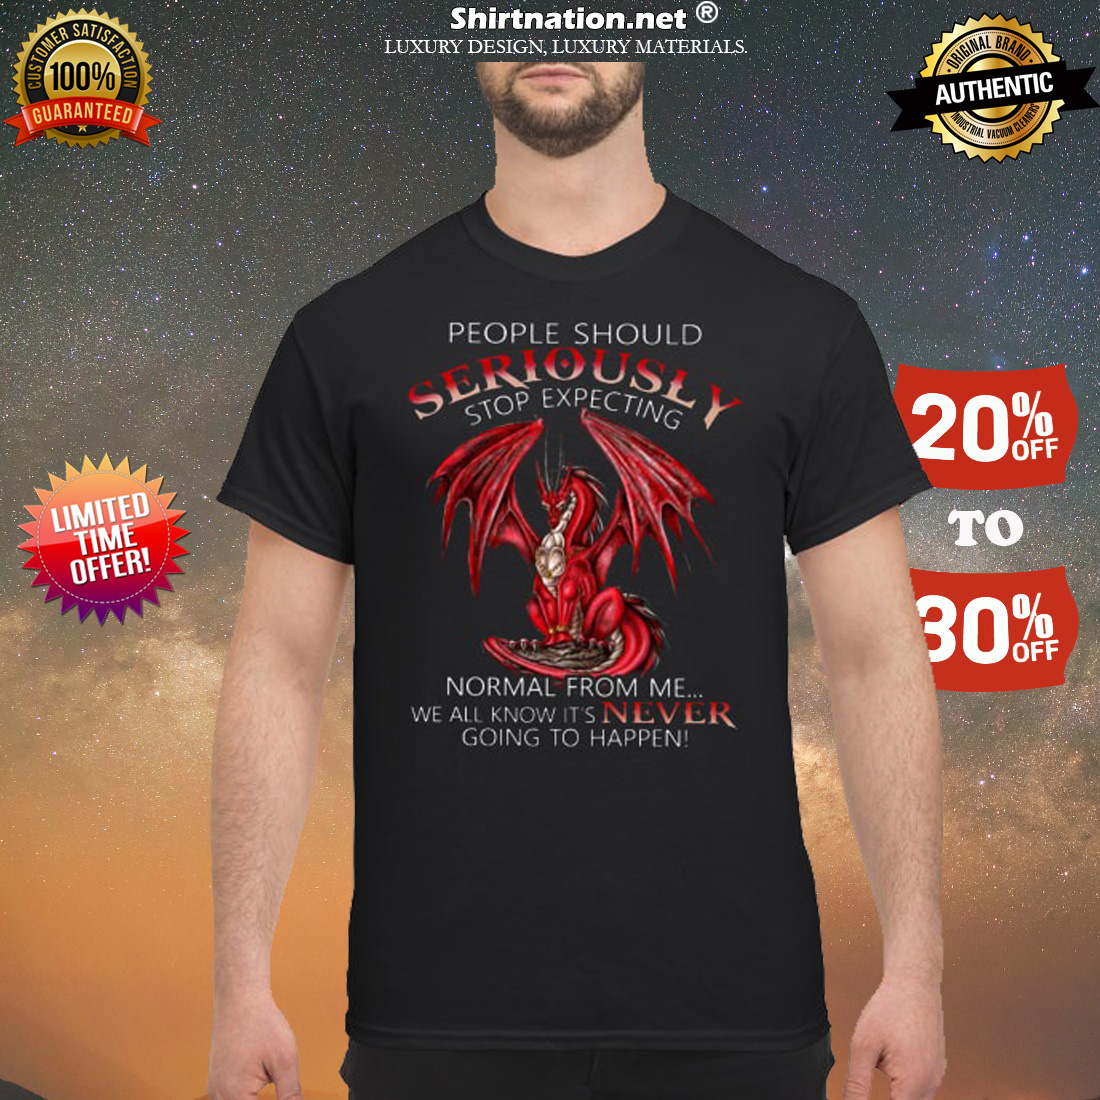 People should seriously expecting normal from me We all know it's never going to happen shirt